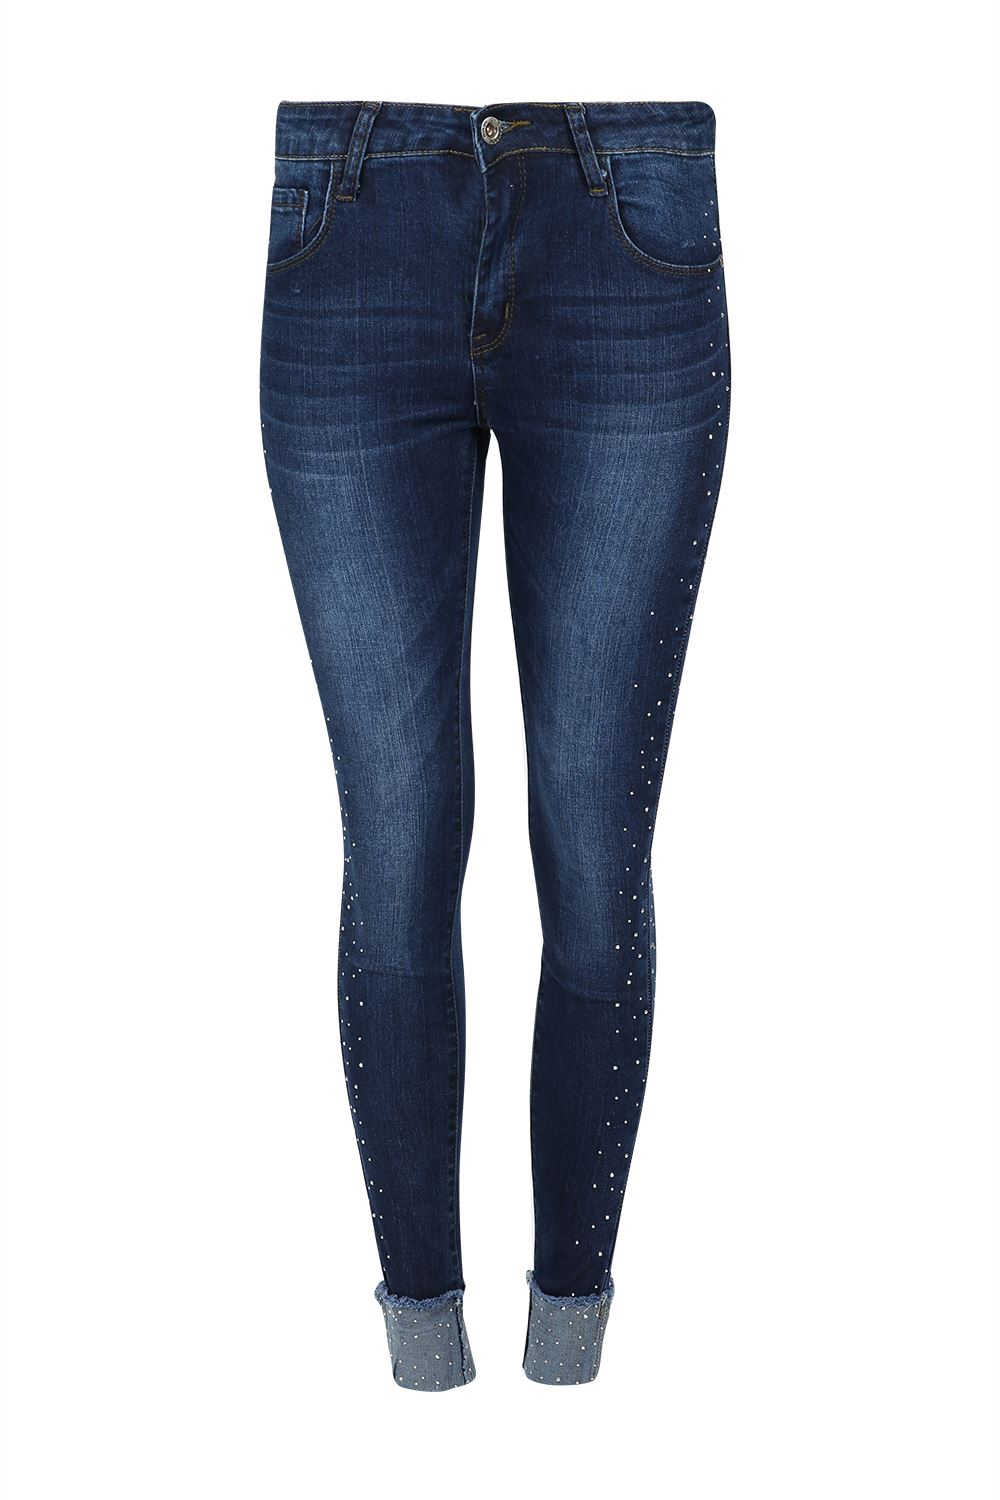 You searched for: studded jeans! Etsy is the home to thousands of handmade, vintage, and one-of-a-kind products and gifts related to your search. No matter what you're looking for or where you are in the world, our global marketplace of sellers can help you find unique and affordable options. Let's get started!